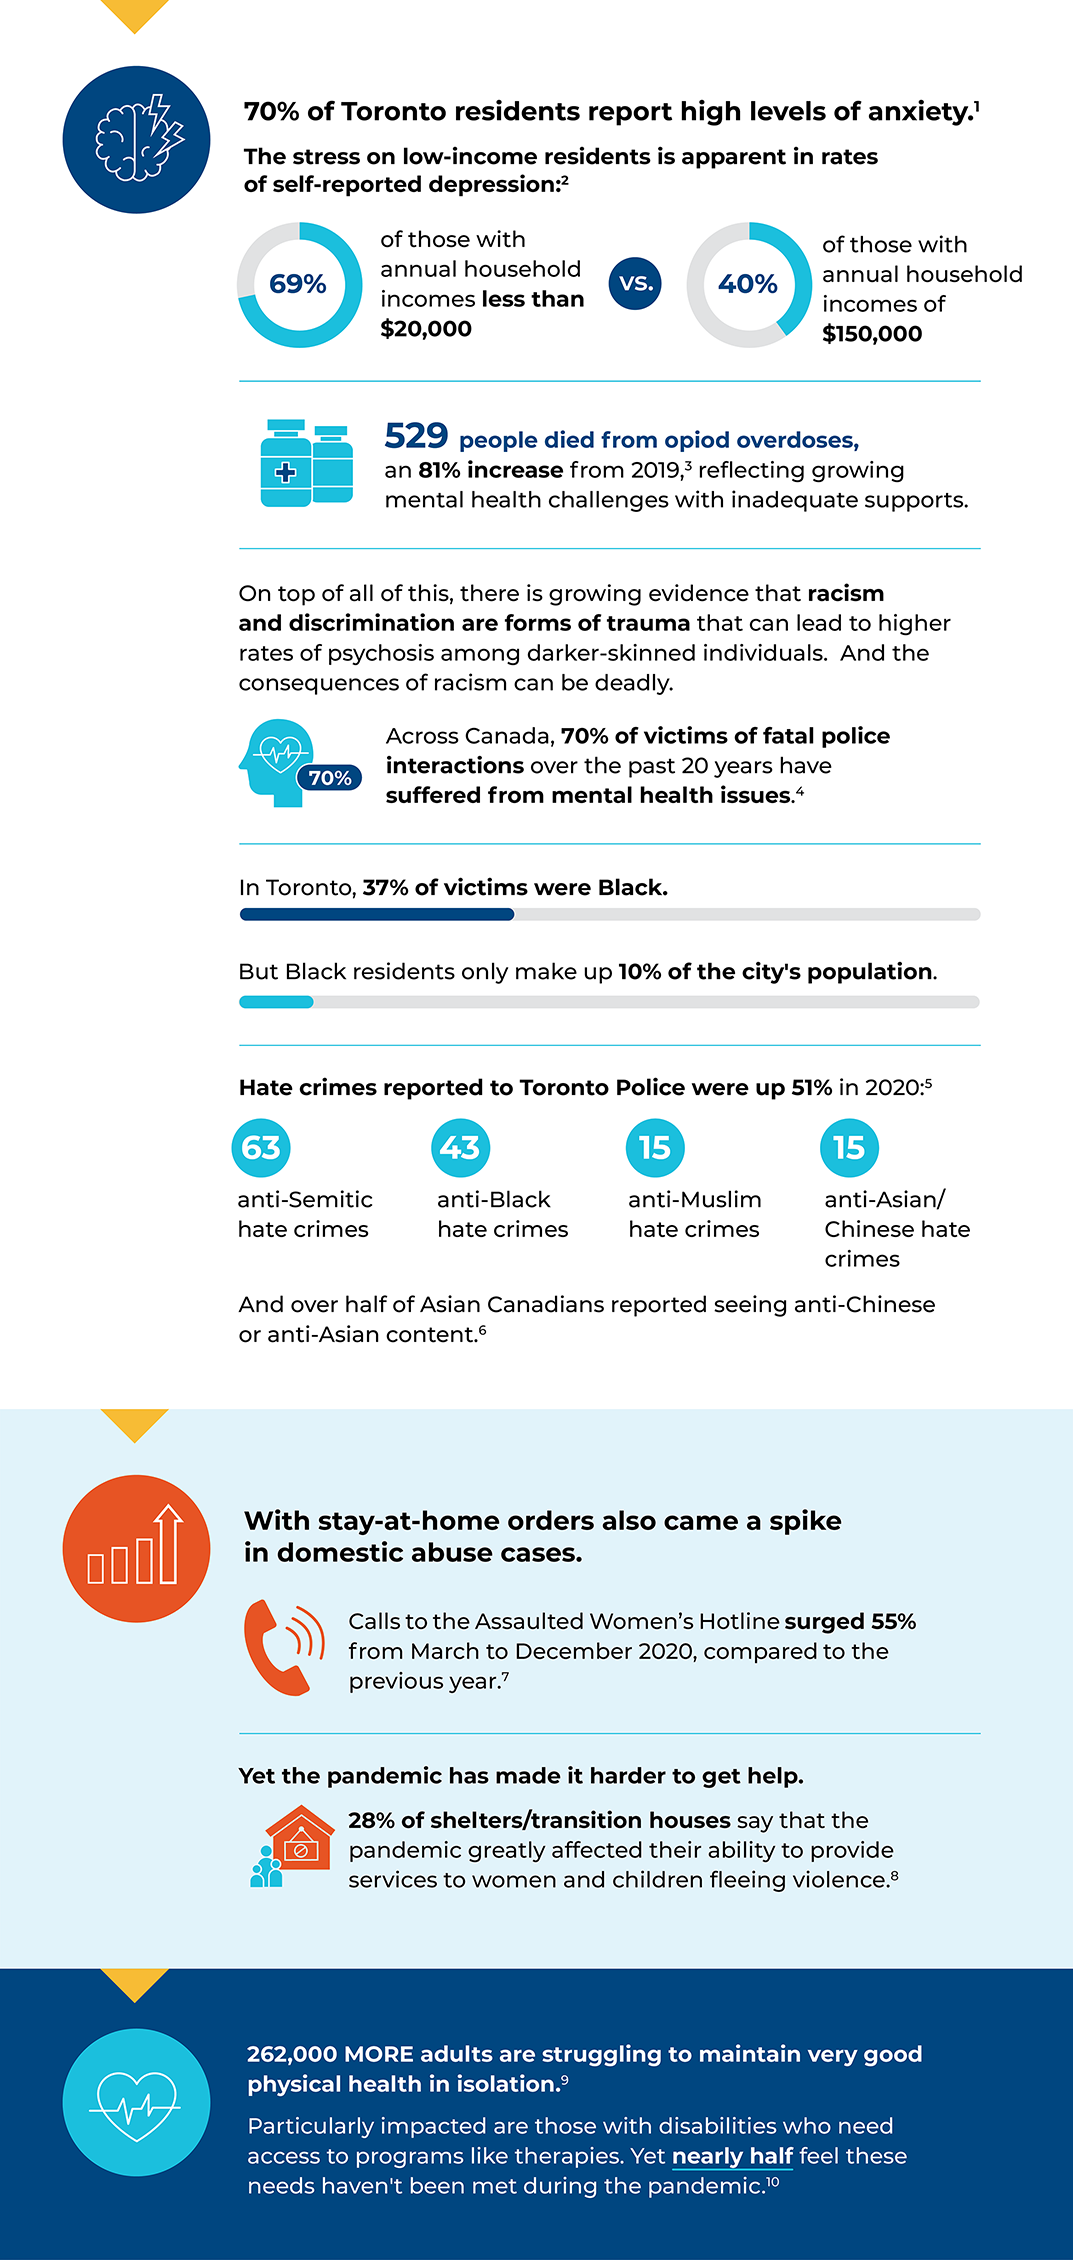 Infographic with data points about the wellbeing of Toronto residents, from the Toronto's Vital Signs 2021 Report.